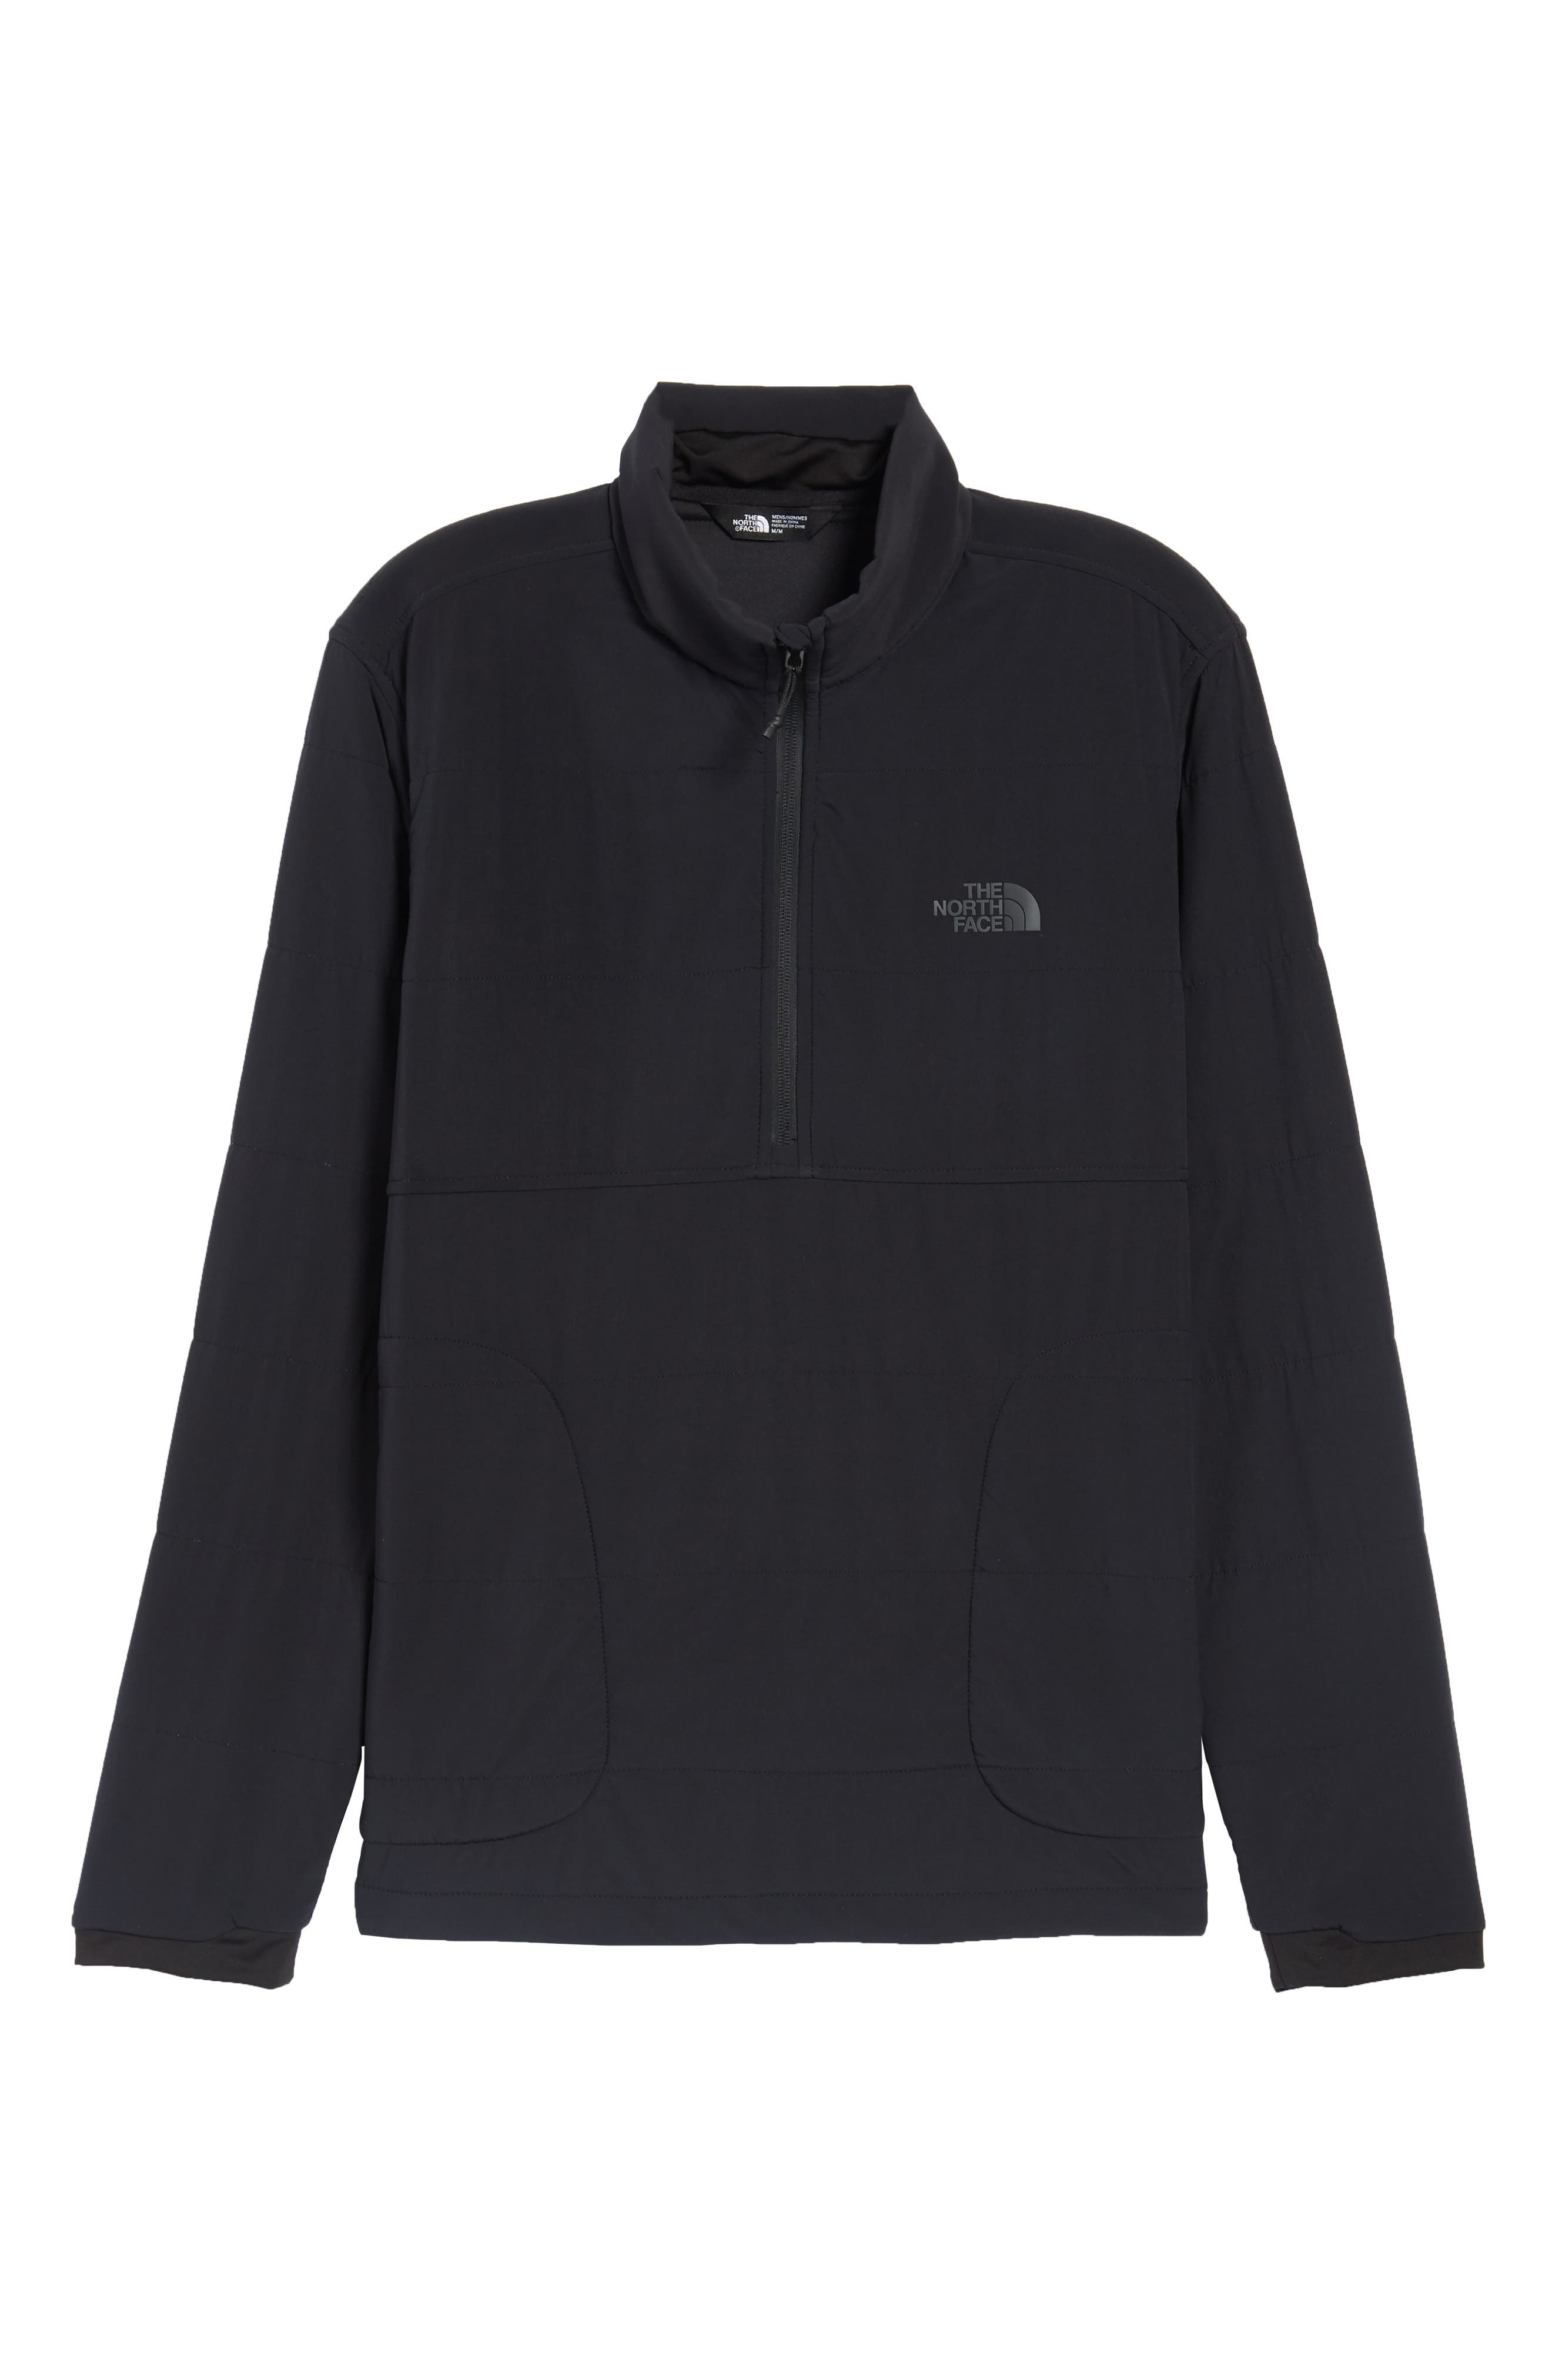 THE NORTH FACE,                             Mountain Quarter Zip Pullover,                             Alternate thumbnail 6, color,                             001